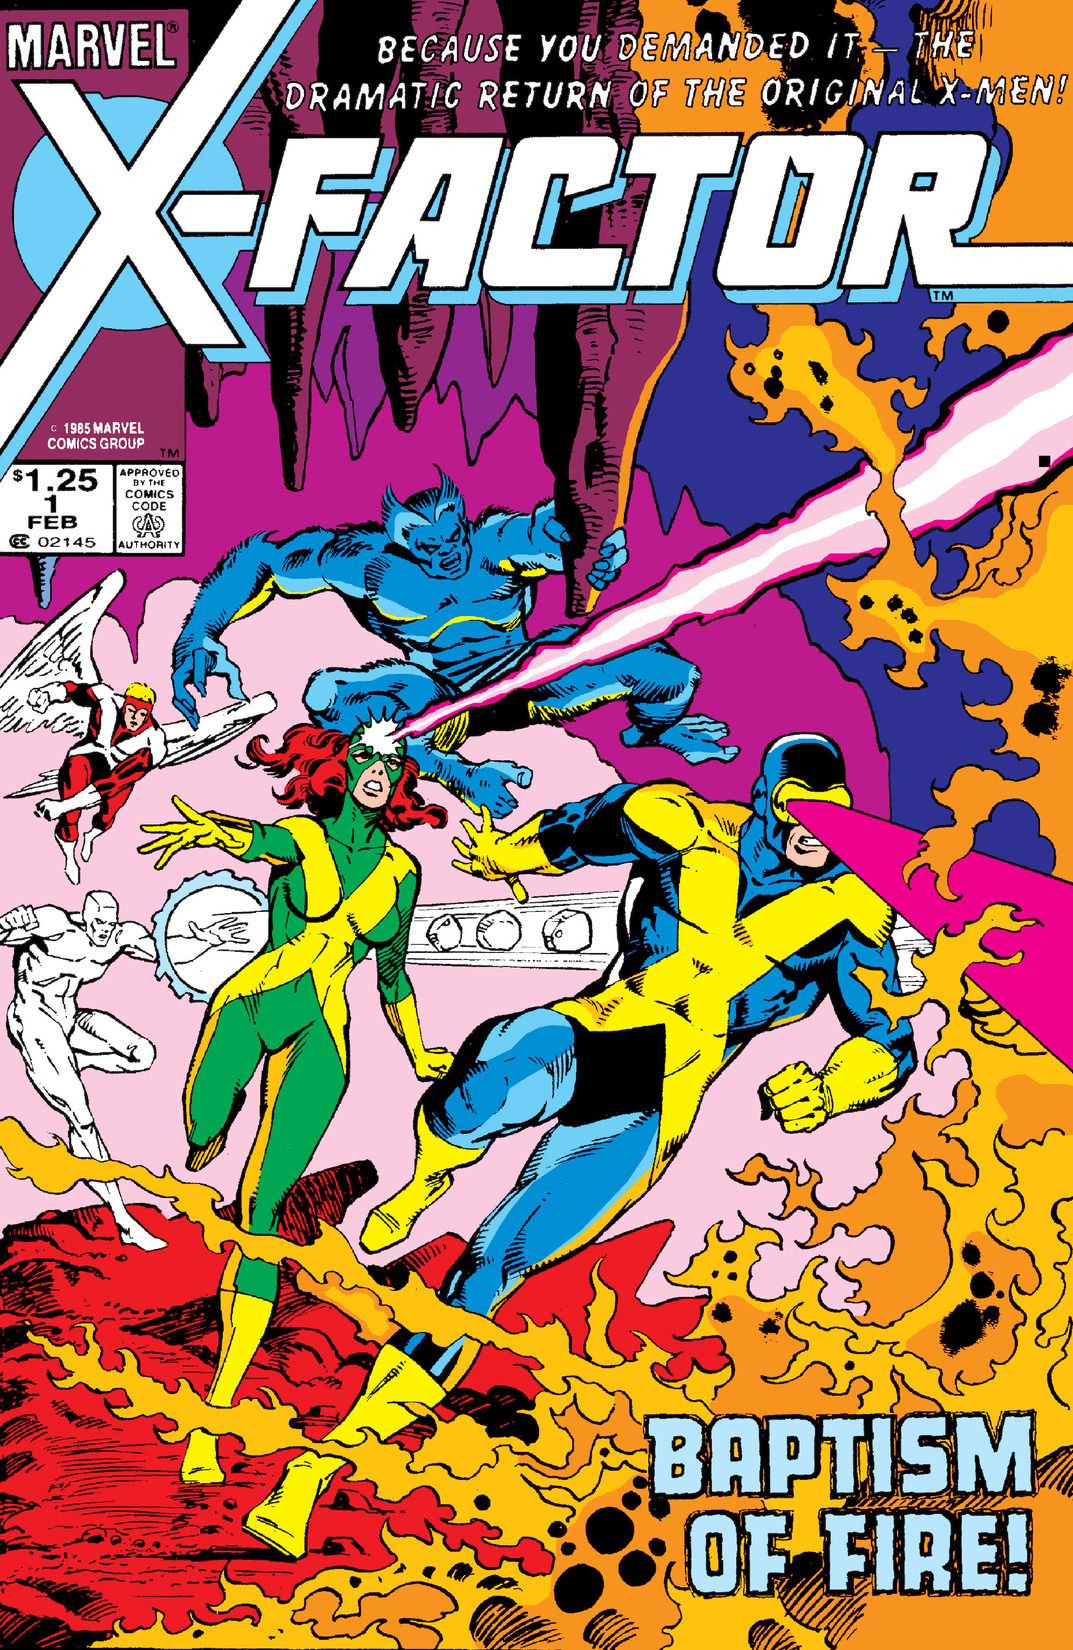 Marvel did chris claremont have to change his long term - X factor x men ...